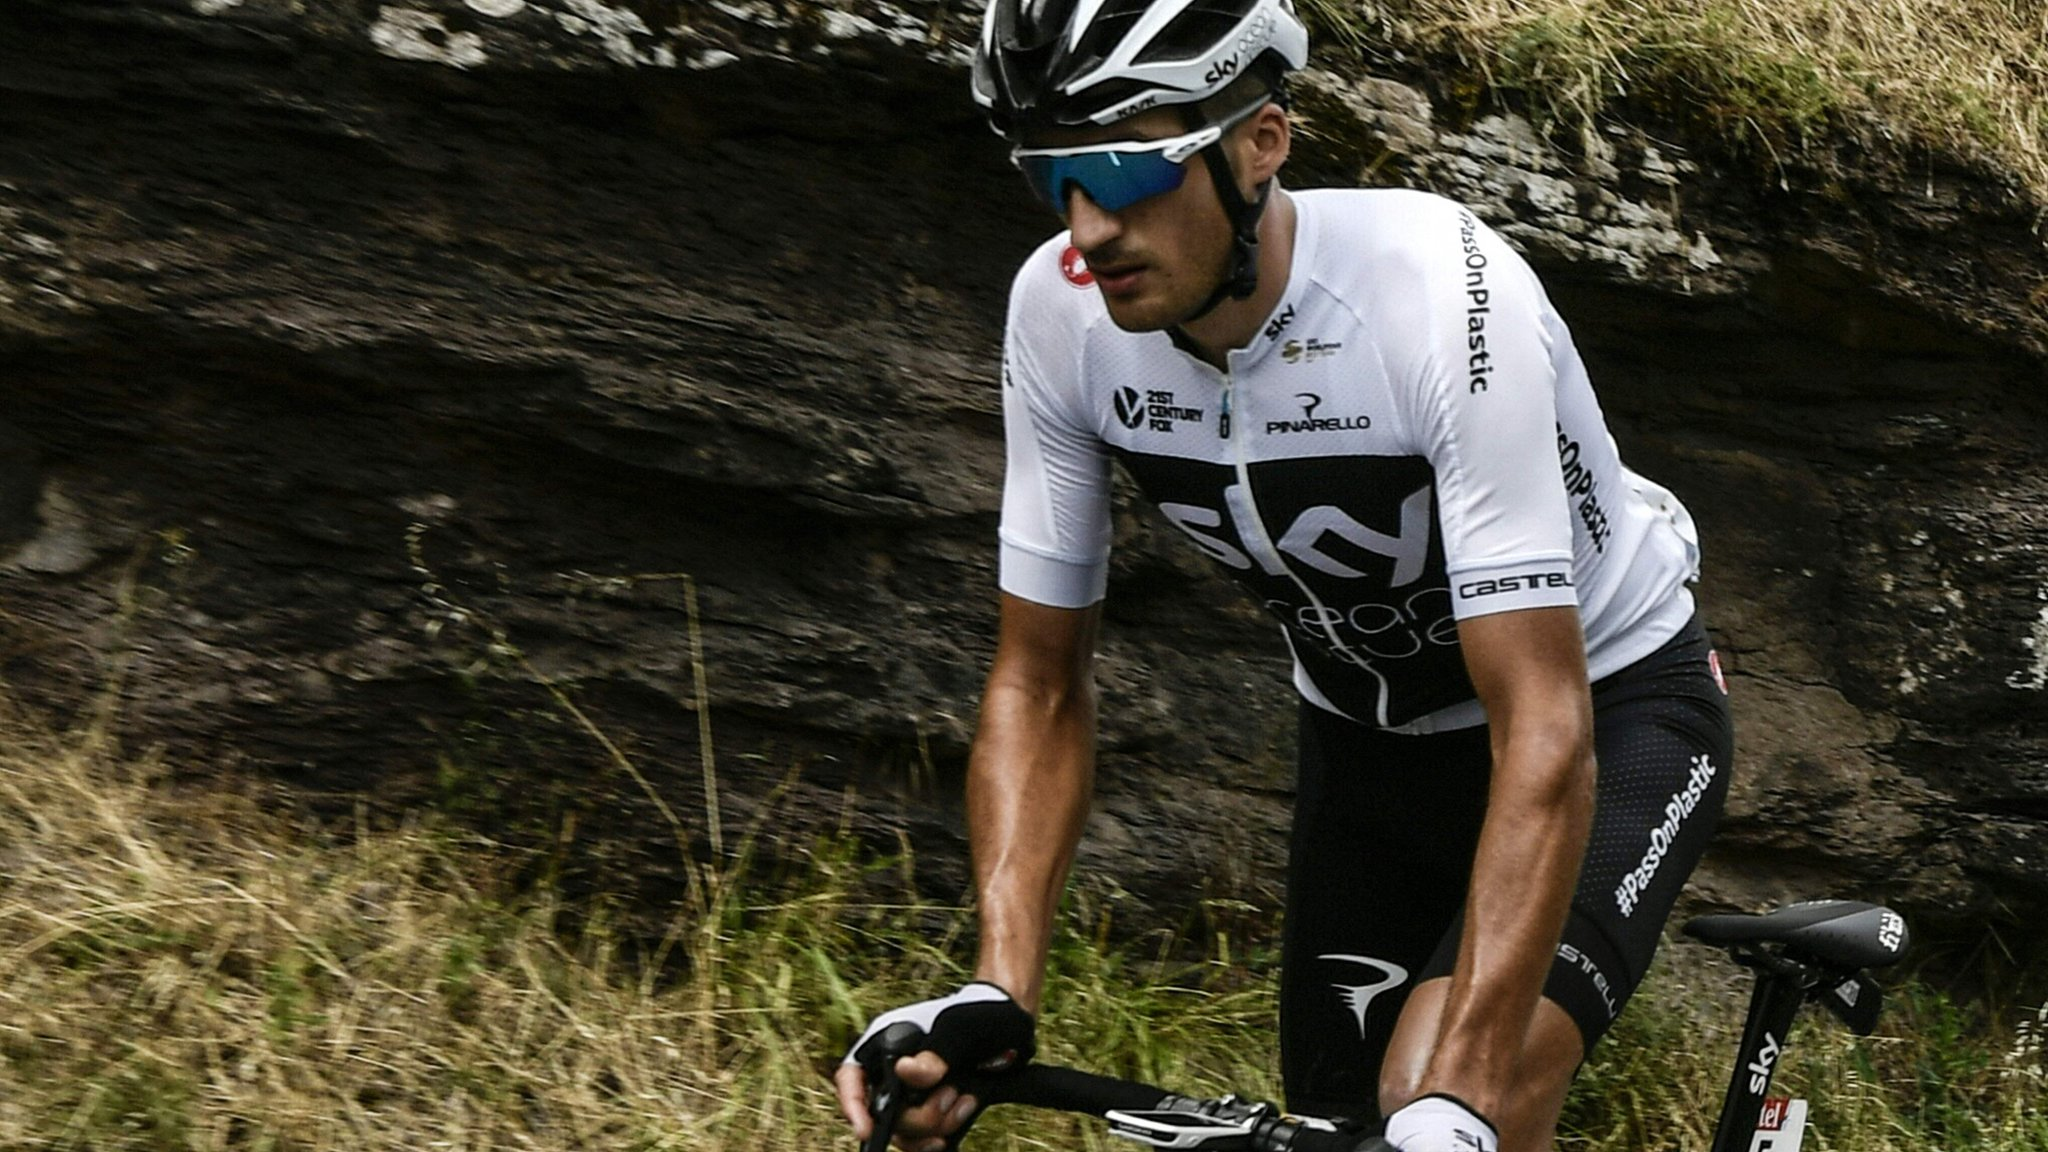 Tour de France 2018: Team Sky's Gianni Moscon disqualified after hitting rider